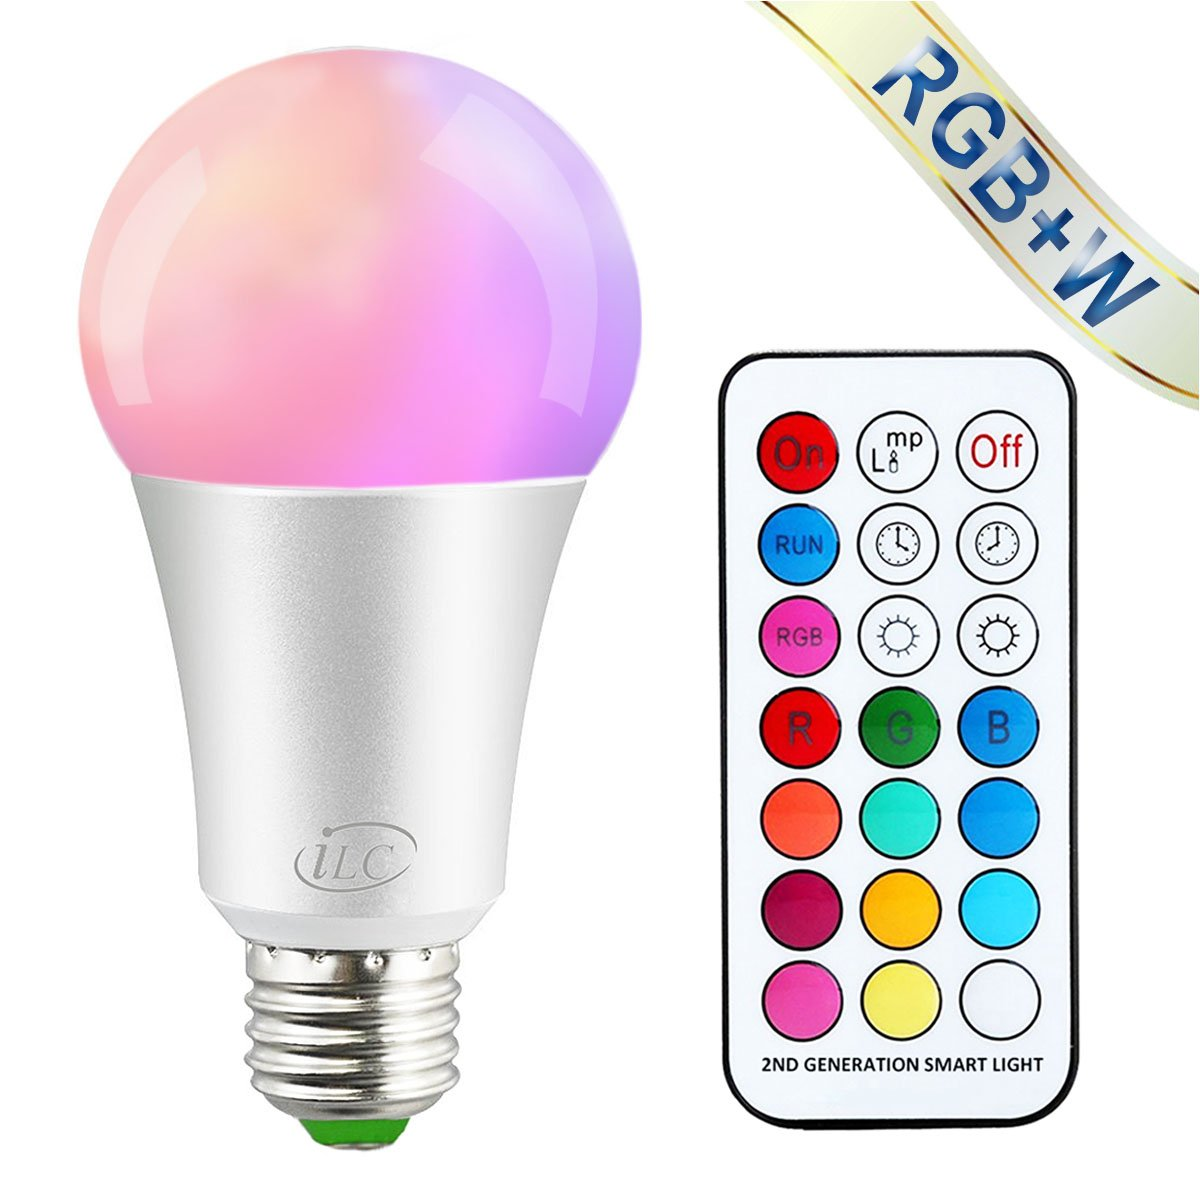 iLC Colour Changing Light Bulb Dimmable 10W E27 Edison Screw RGBW LED Light  Bulbs Colour Changing Lights, Mood Light RGB White Coloured- Dual Memory -  12 ...